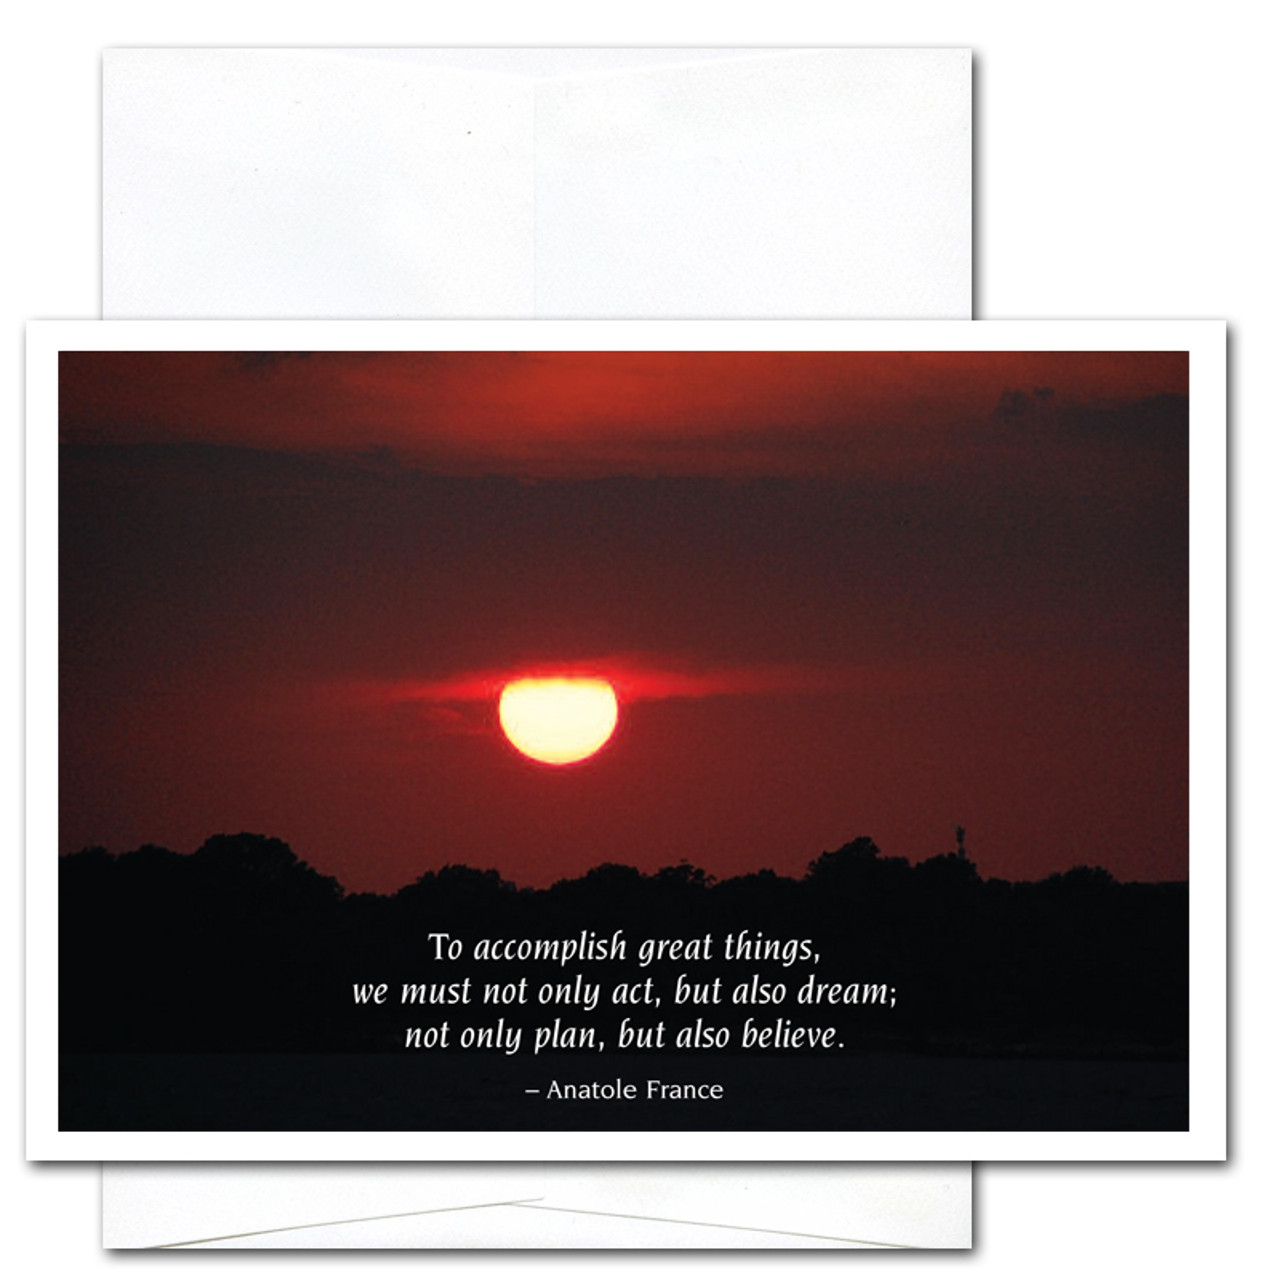 """Quotations Card - Great Things cover shows photo of sunset in deep reds with the Anatole France quote """"To accomplish great things we must not only act, but also dream; not only plan but also believe"""""""